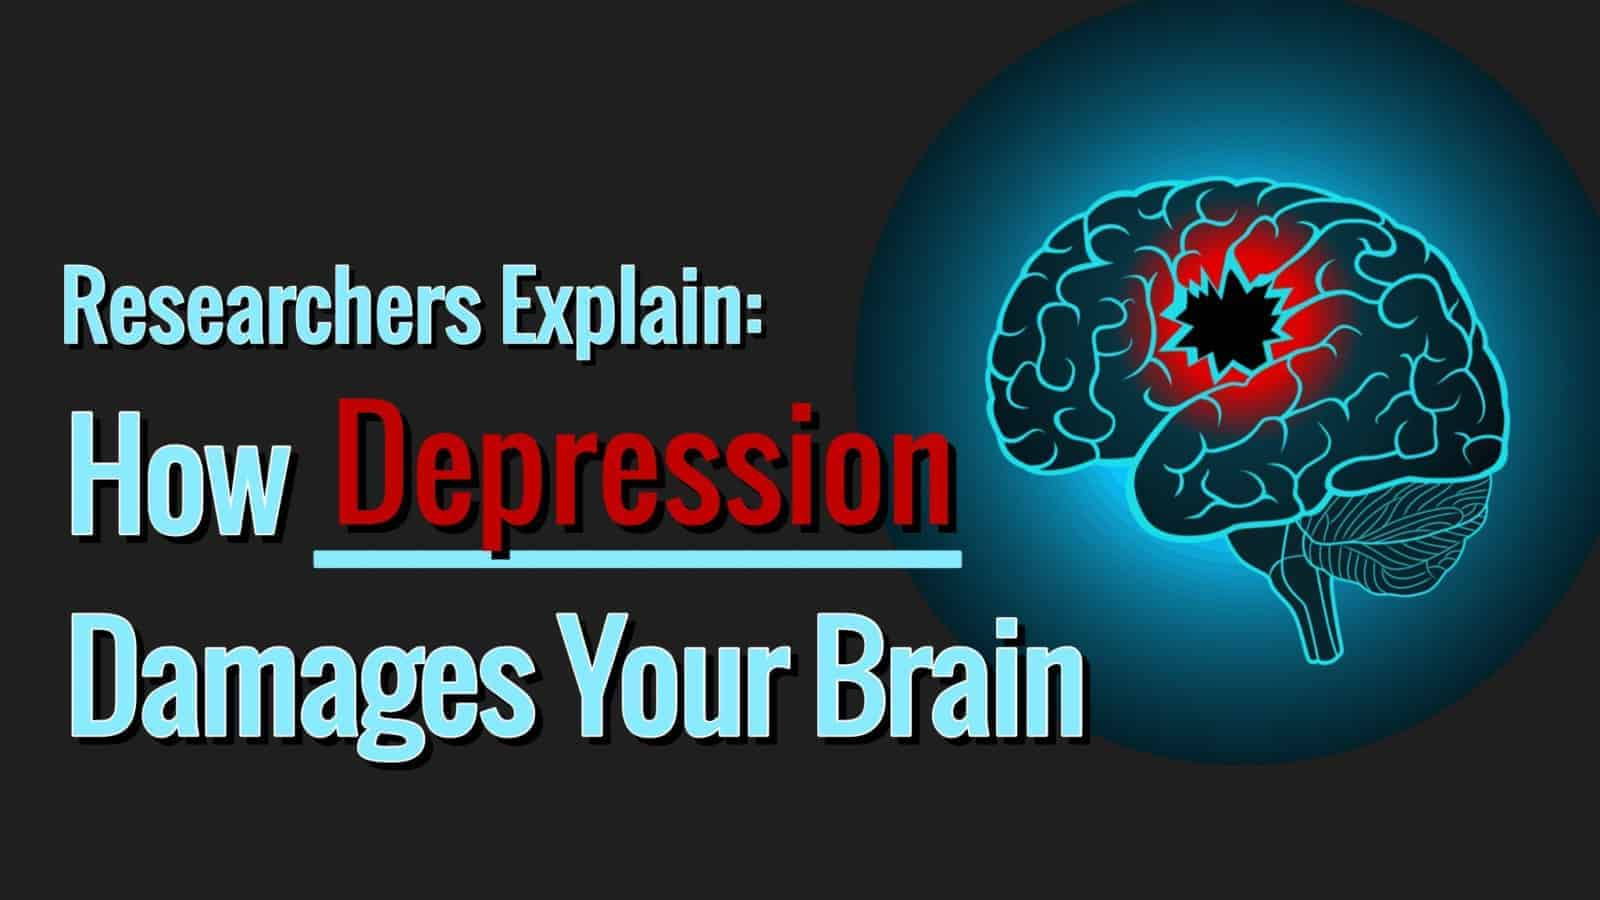 Researchers Explain How Depression Damages Parts of Your Brain